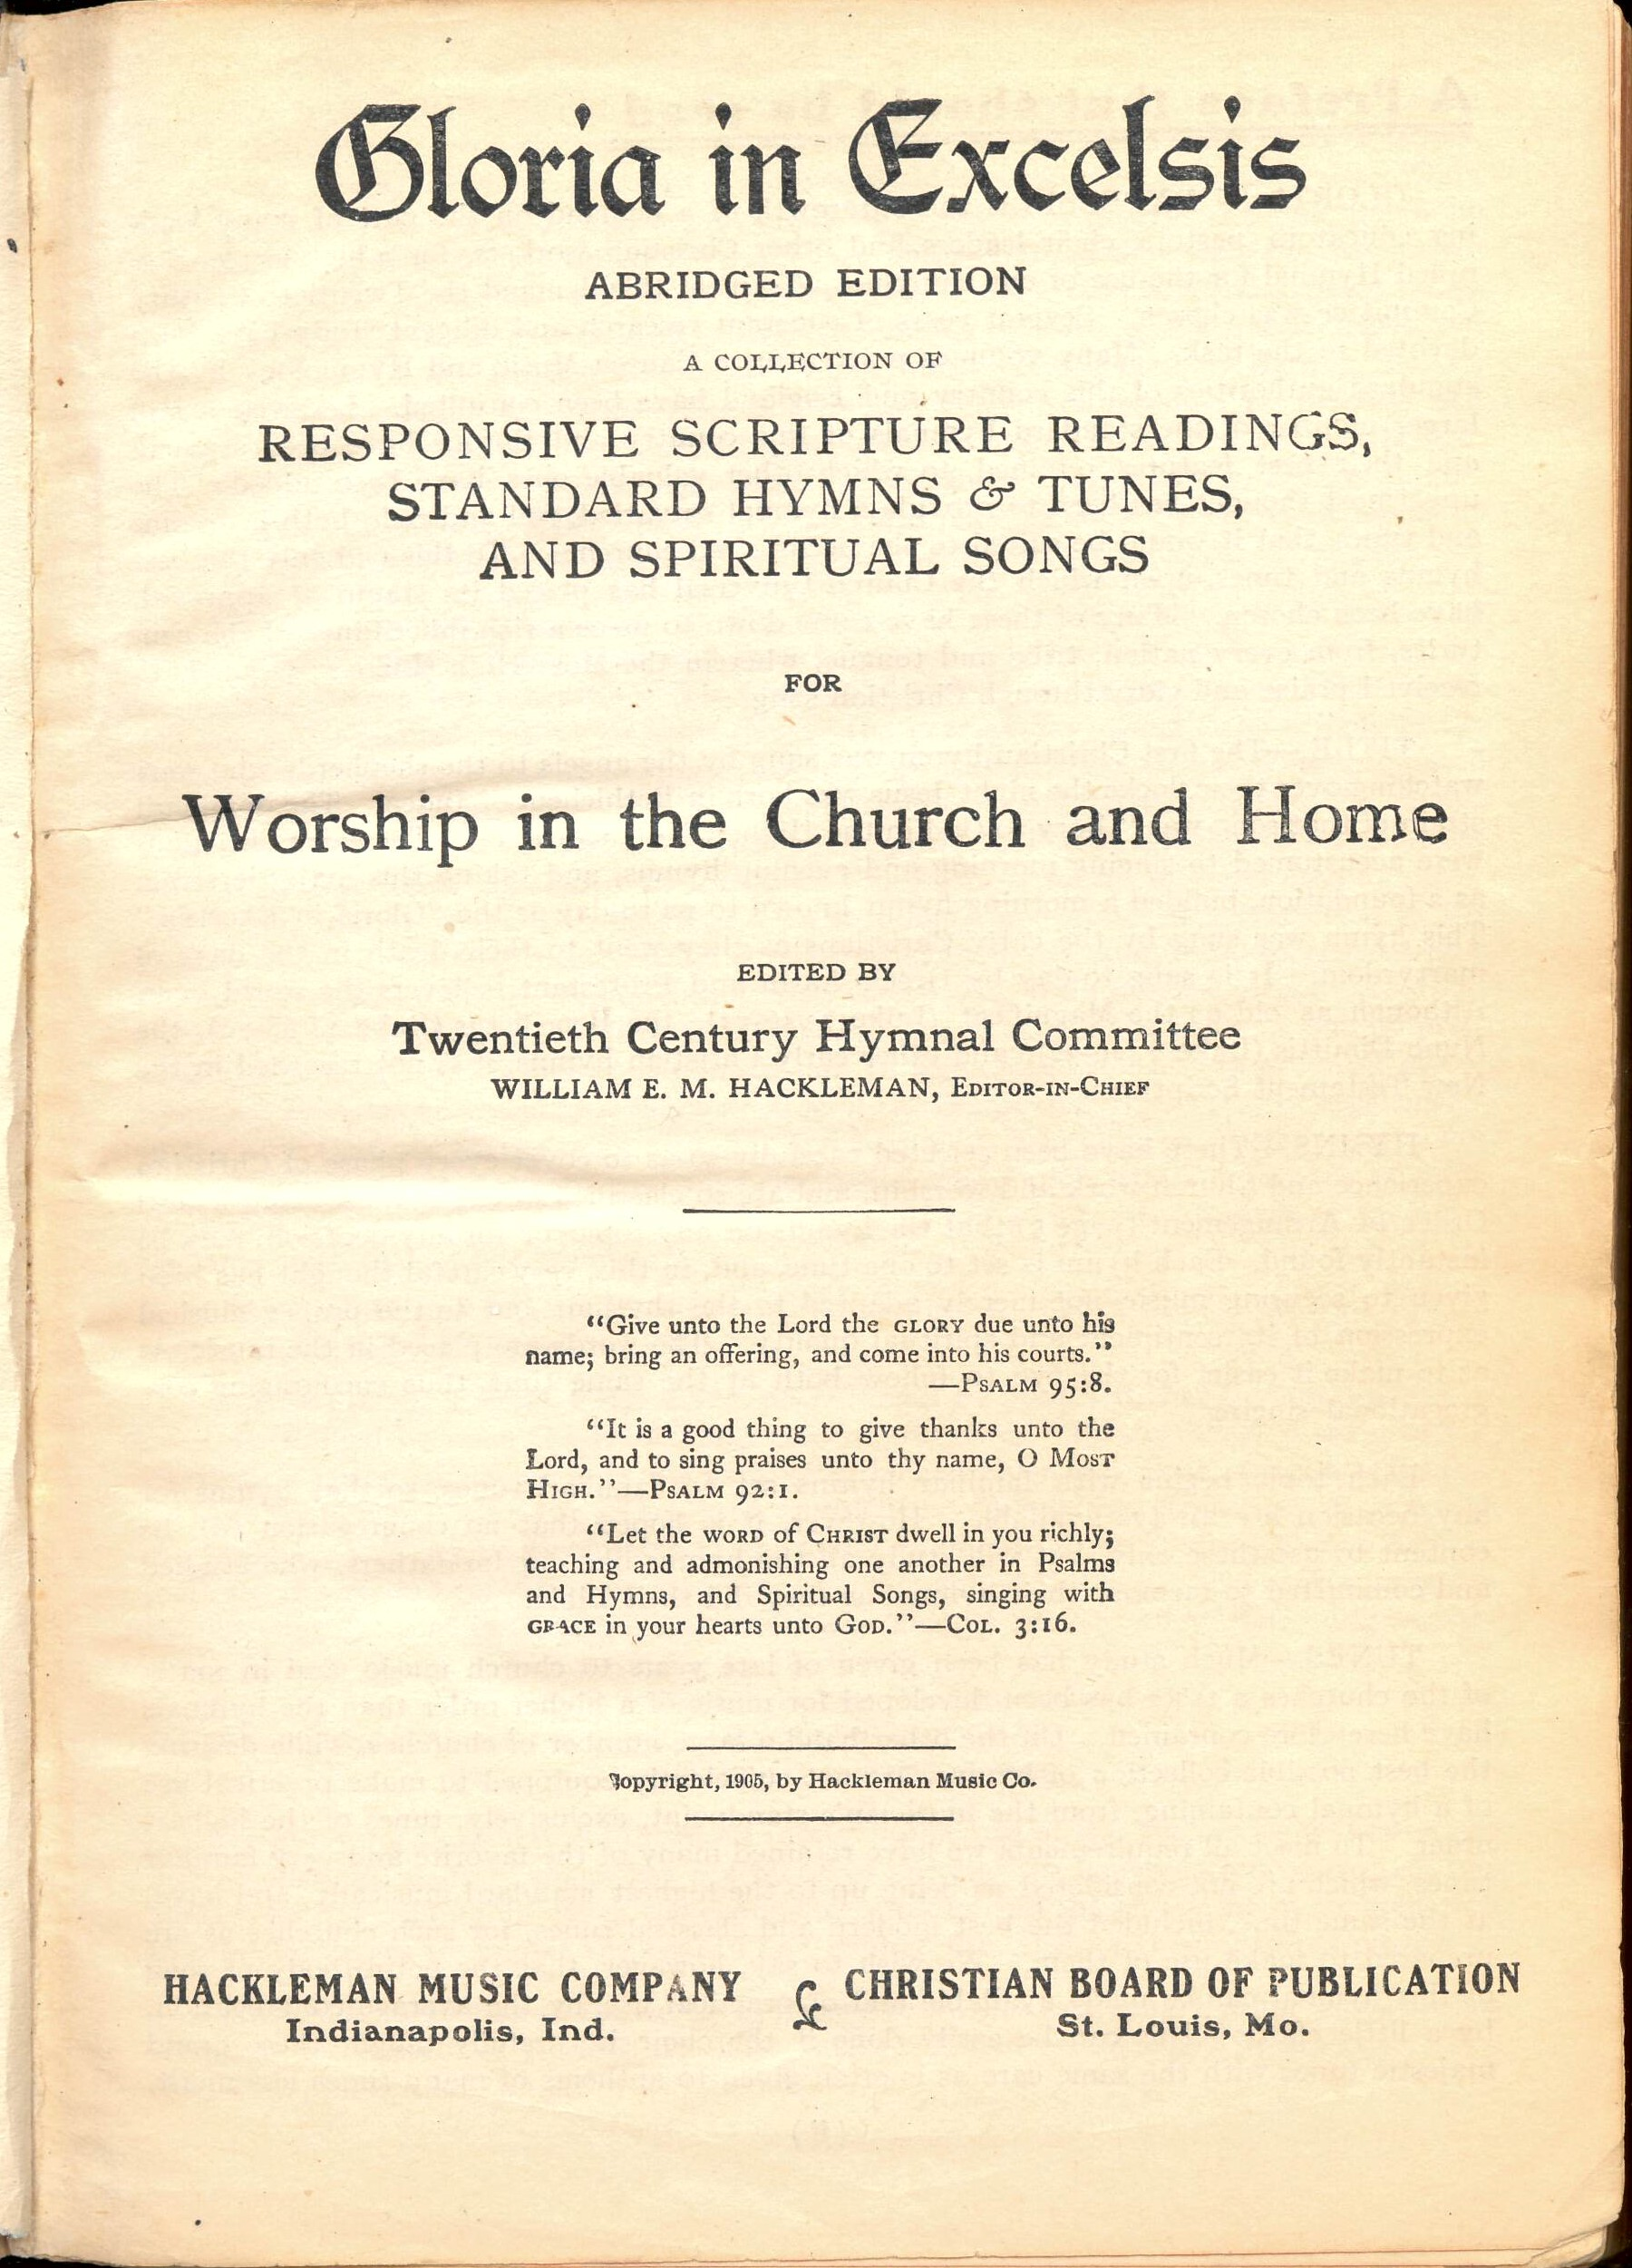 Gloria in Excelsis, A Collection of Responsive Scripture Readings, Standard Hymns and Tunes, and Spiritual Songs for Worship in the Church and Home. William E. M. Hackleman, Compiler. Hackleman Music Company: Indianapolis and Christian Board of Publication: St. Louis, 1905. Title page.